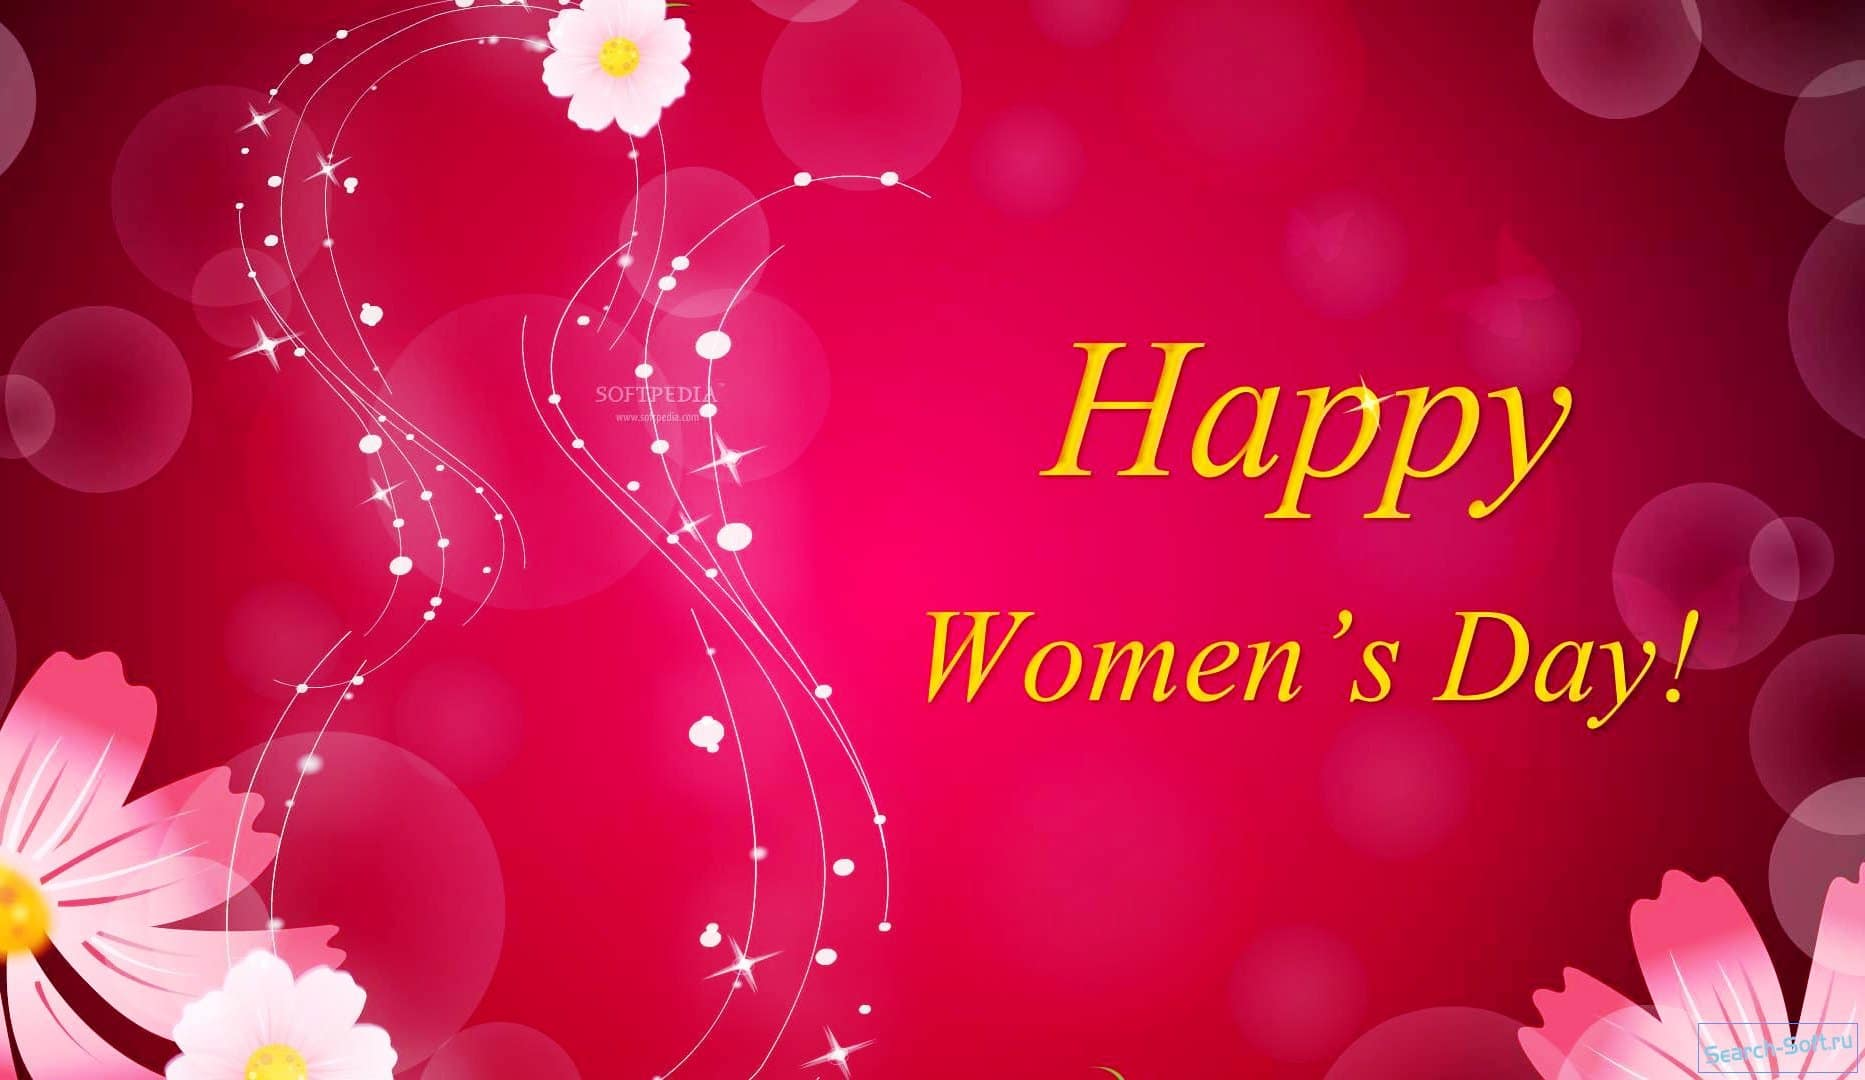 Women's Day Wallpaper, photos and Images